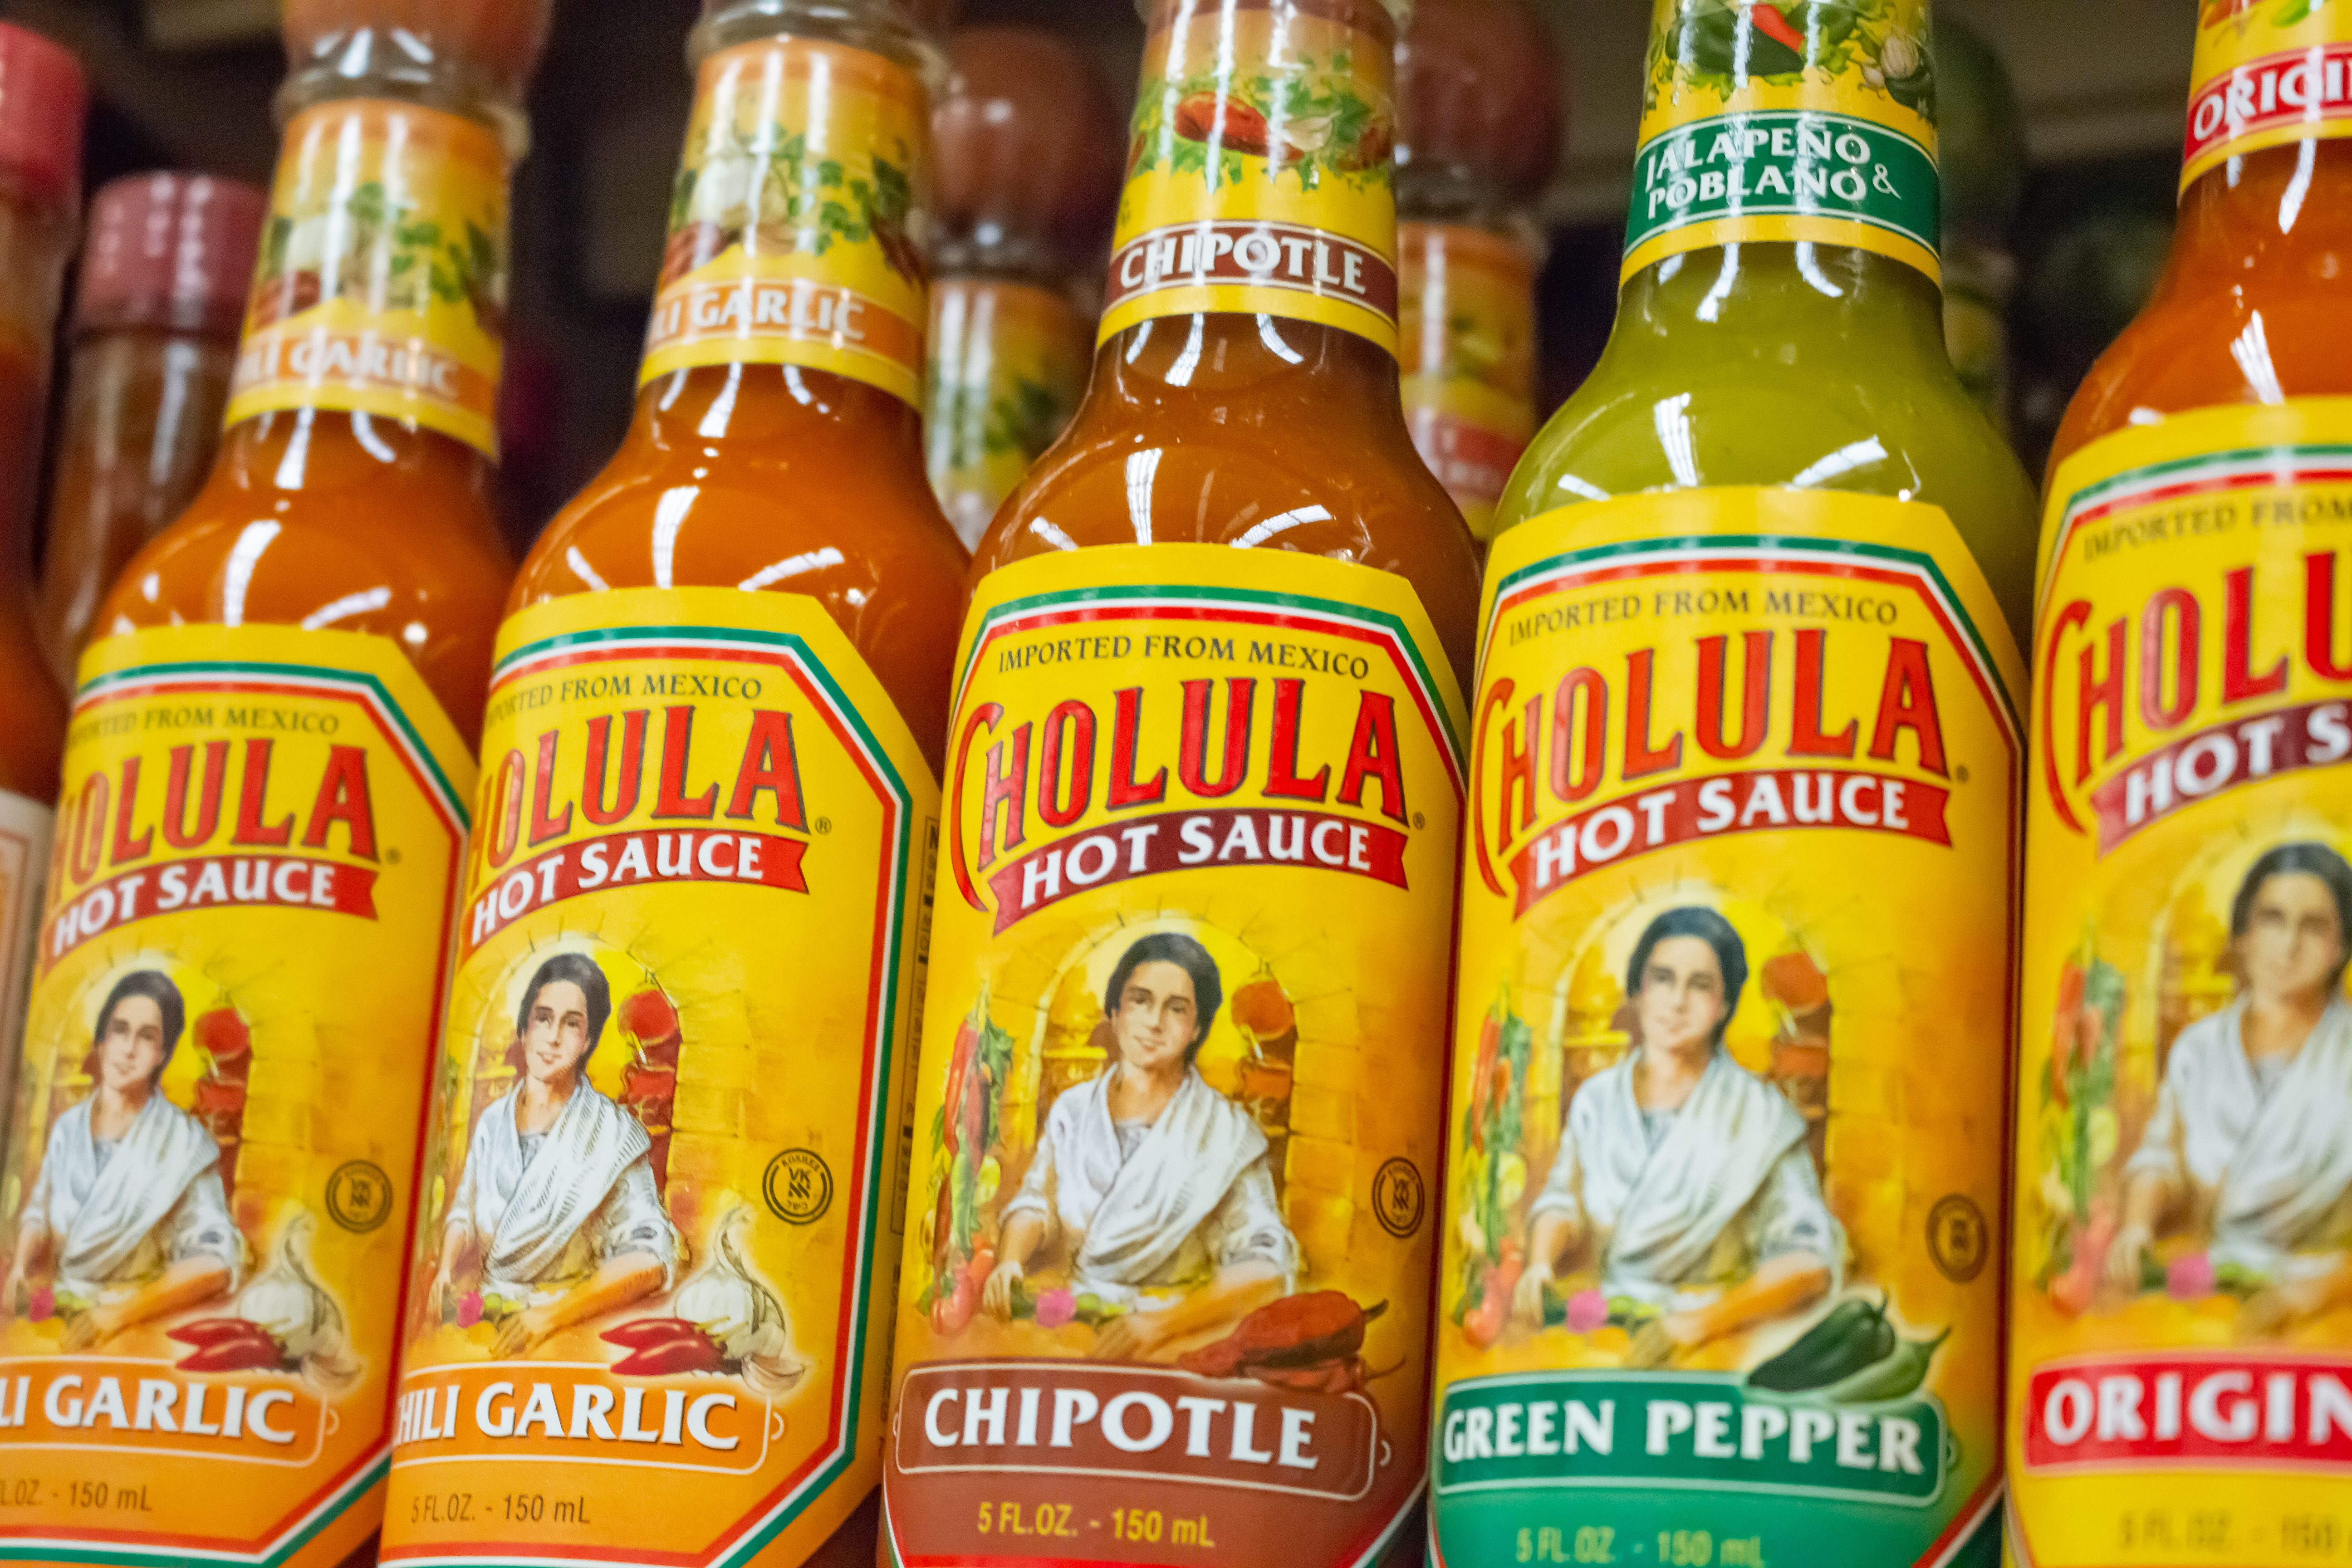 Bottles of Cholula hot sauces lined up on a grocery store shelf.